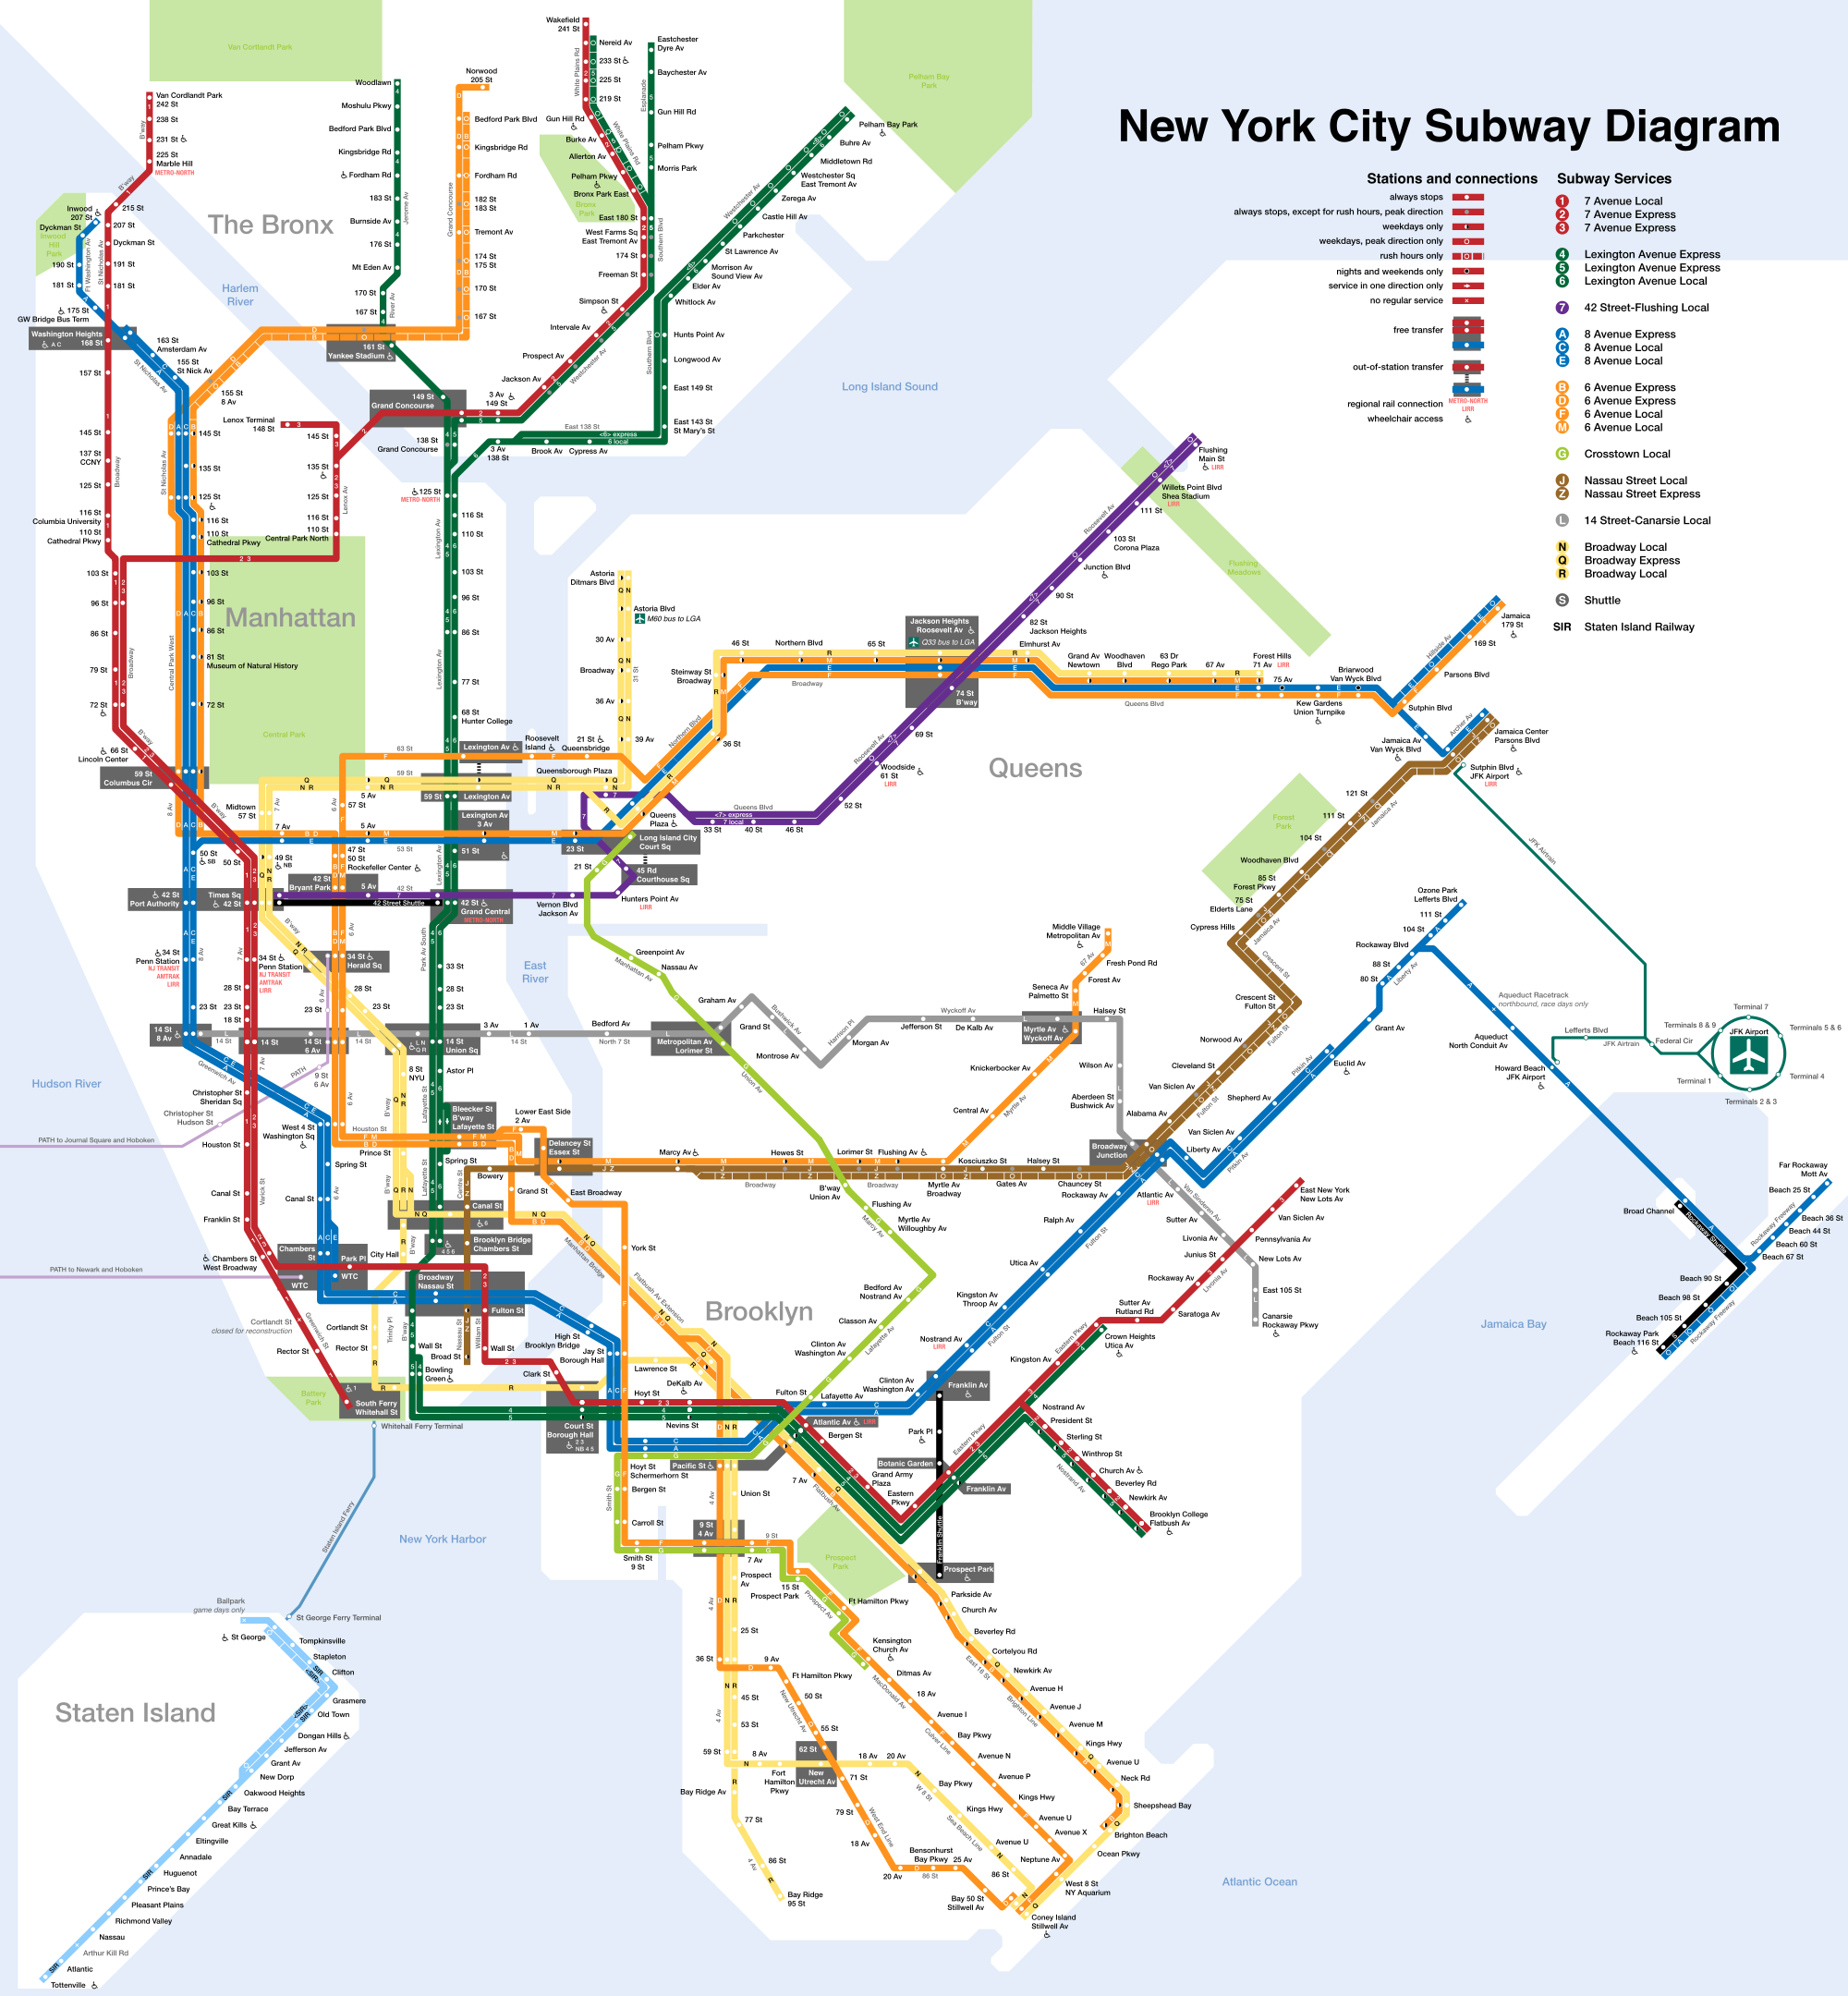 Manhattan Mta Mini Subway Map And Address Finder.Printable New York City Map New York City Subway Map Page Below